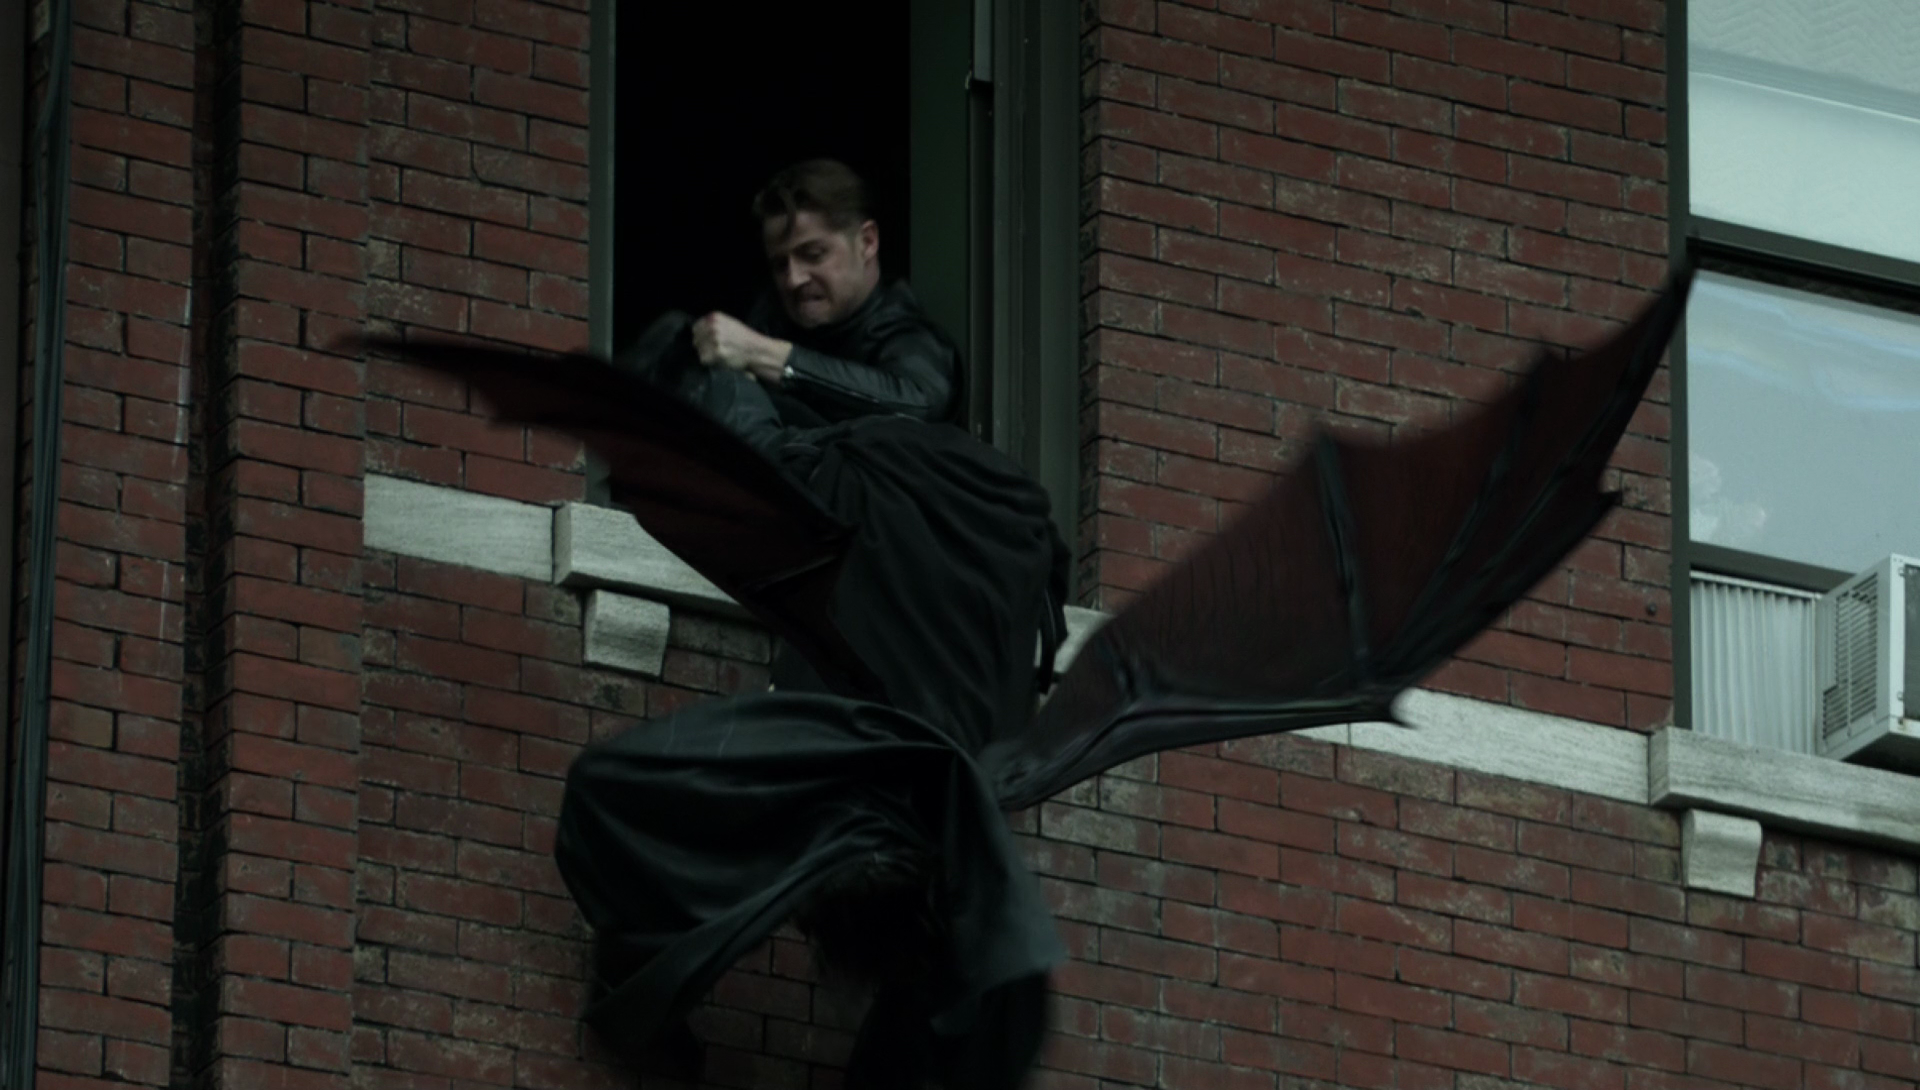 Man Cave Tv Show Uk : Kneel before gotham better to reign in hell